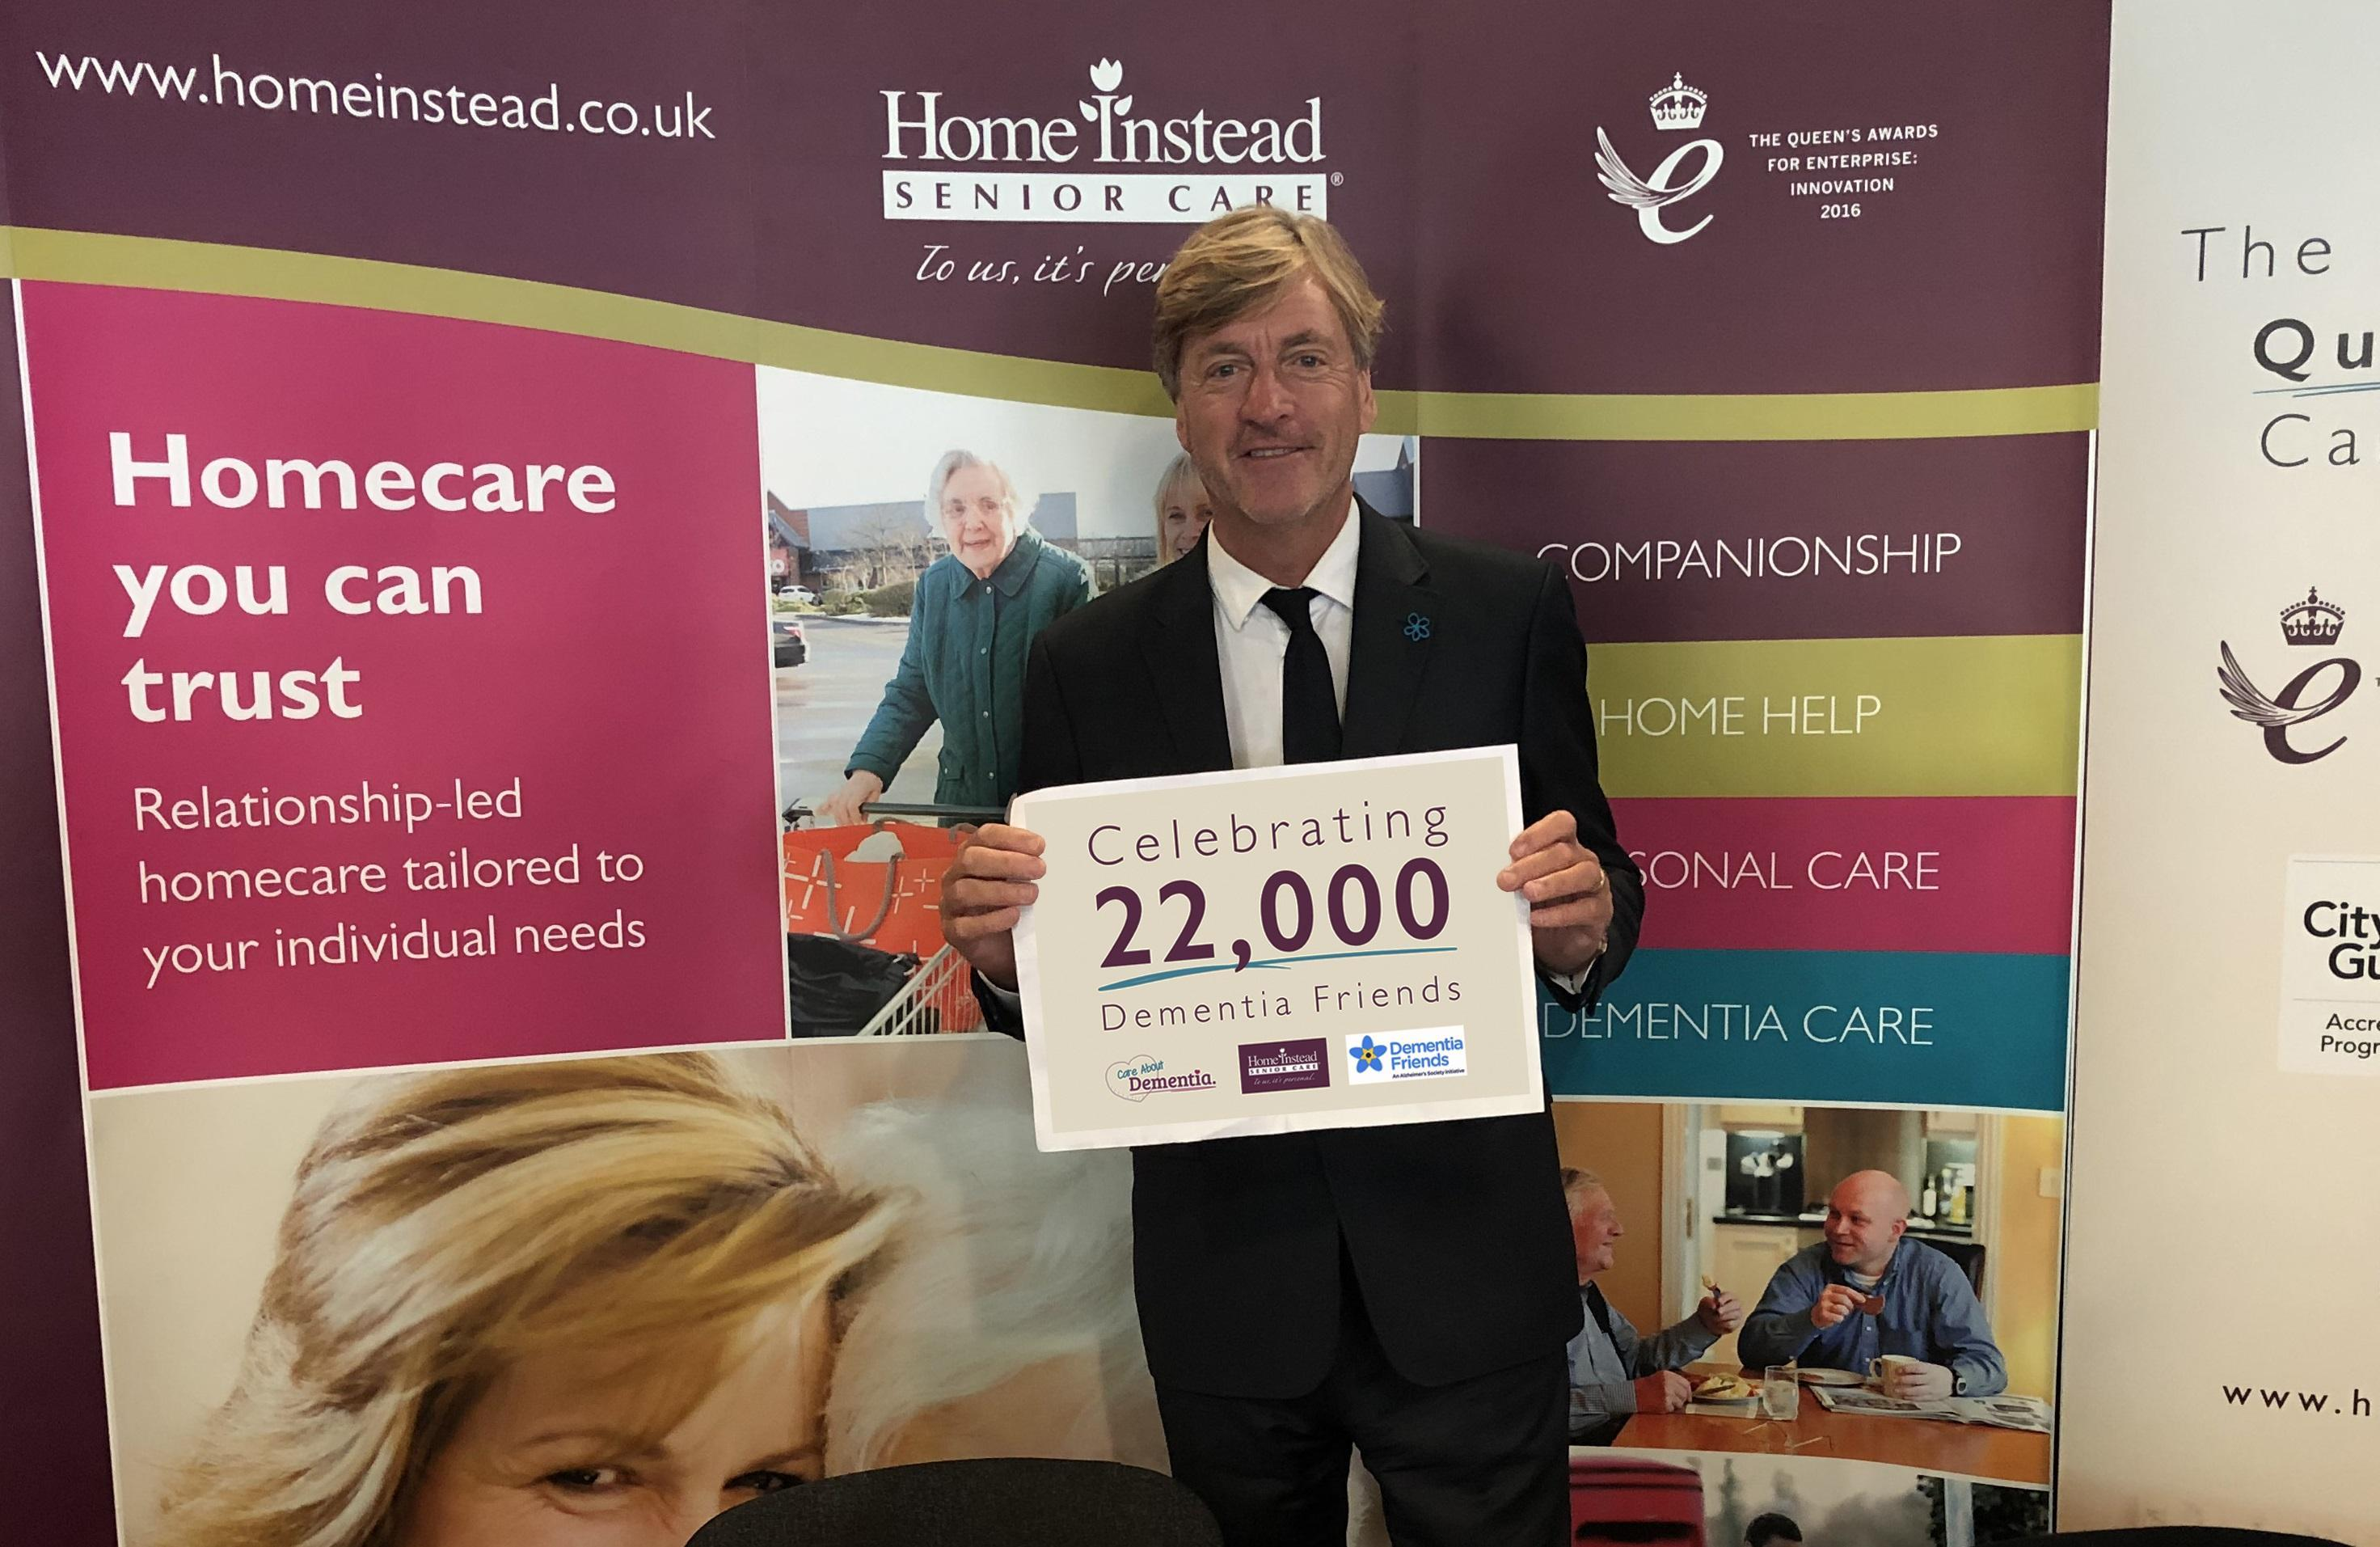 Photo of Richard Madeley with a Dementia Friends sign